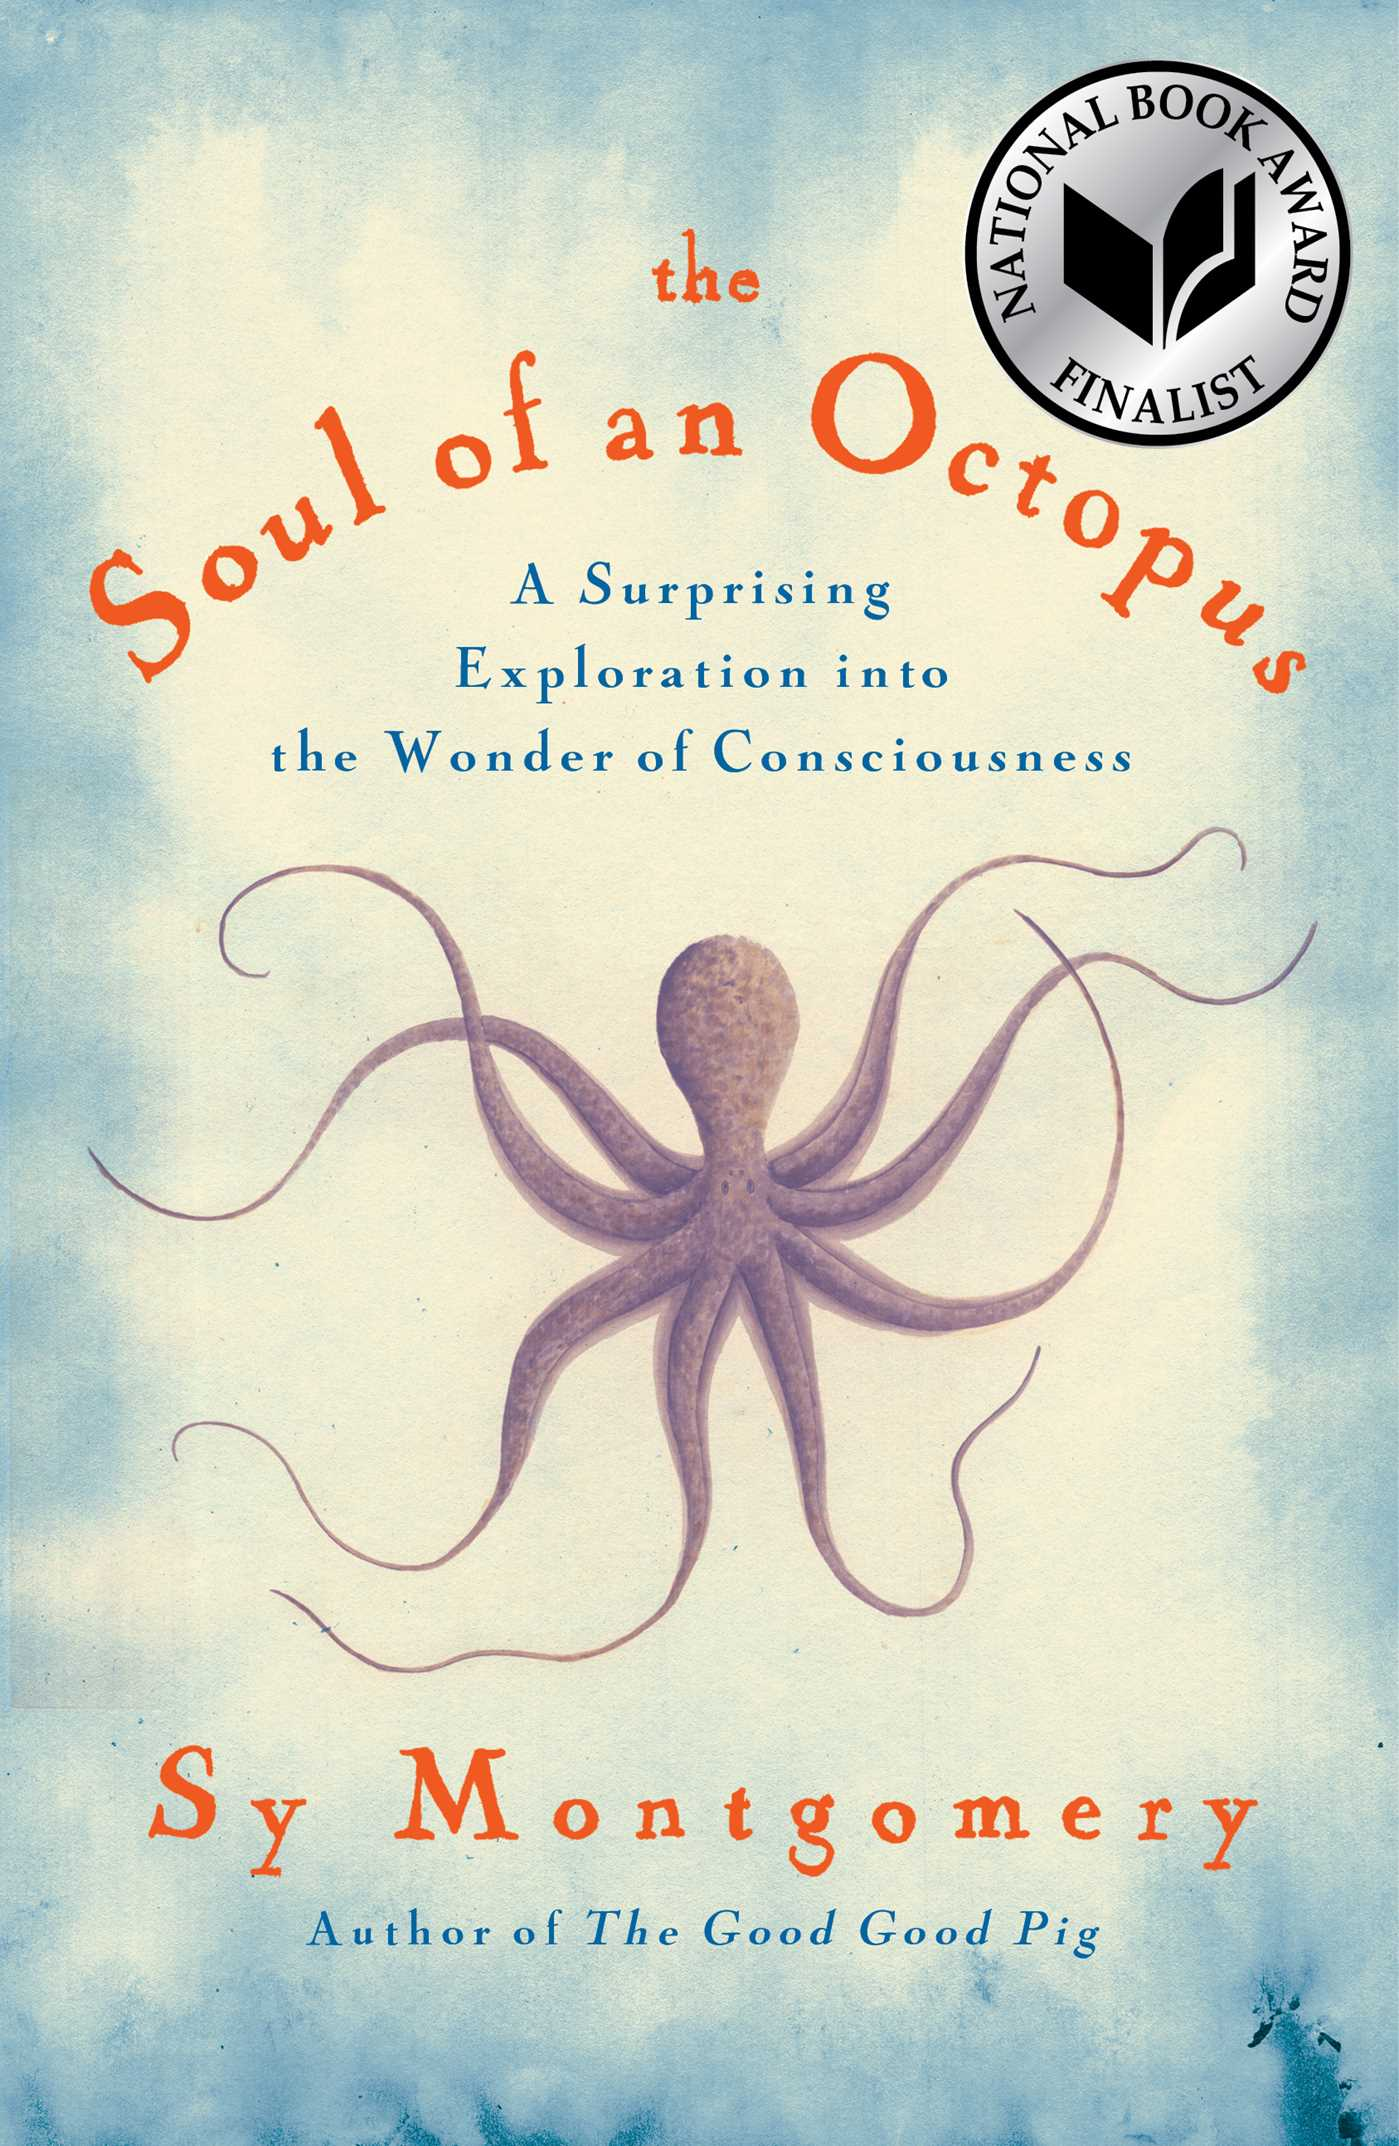 The Soul of an Octopus [electronic resource] : A Surprising Exploration into the Wonder of Consciousness